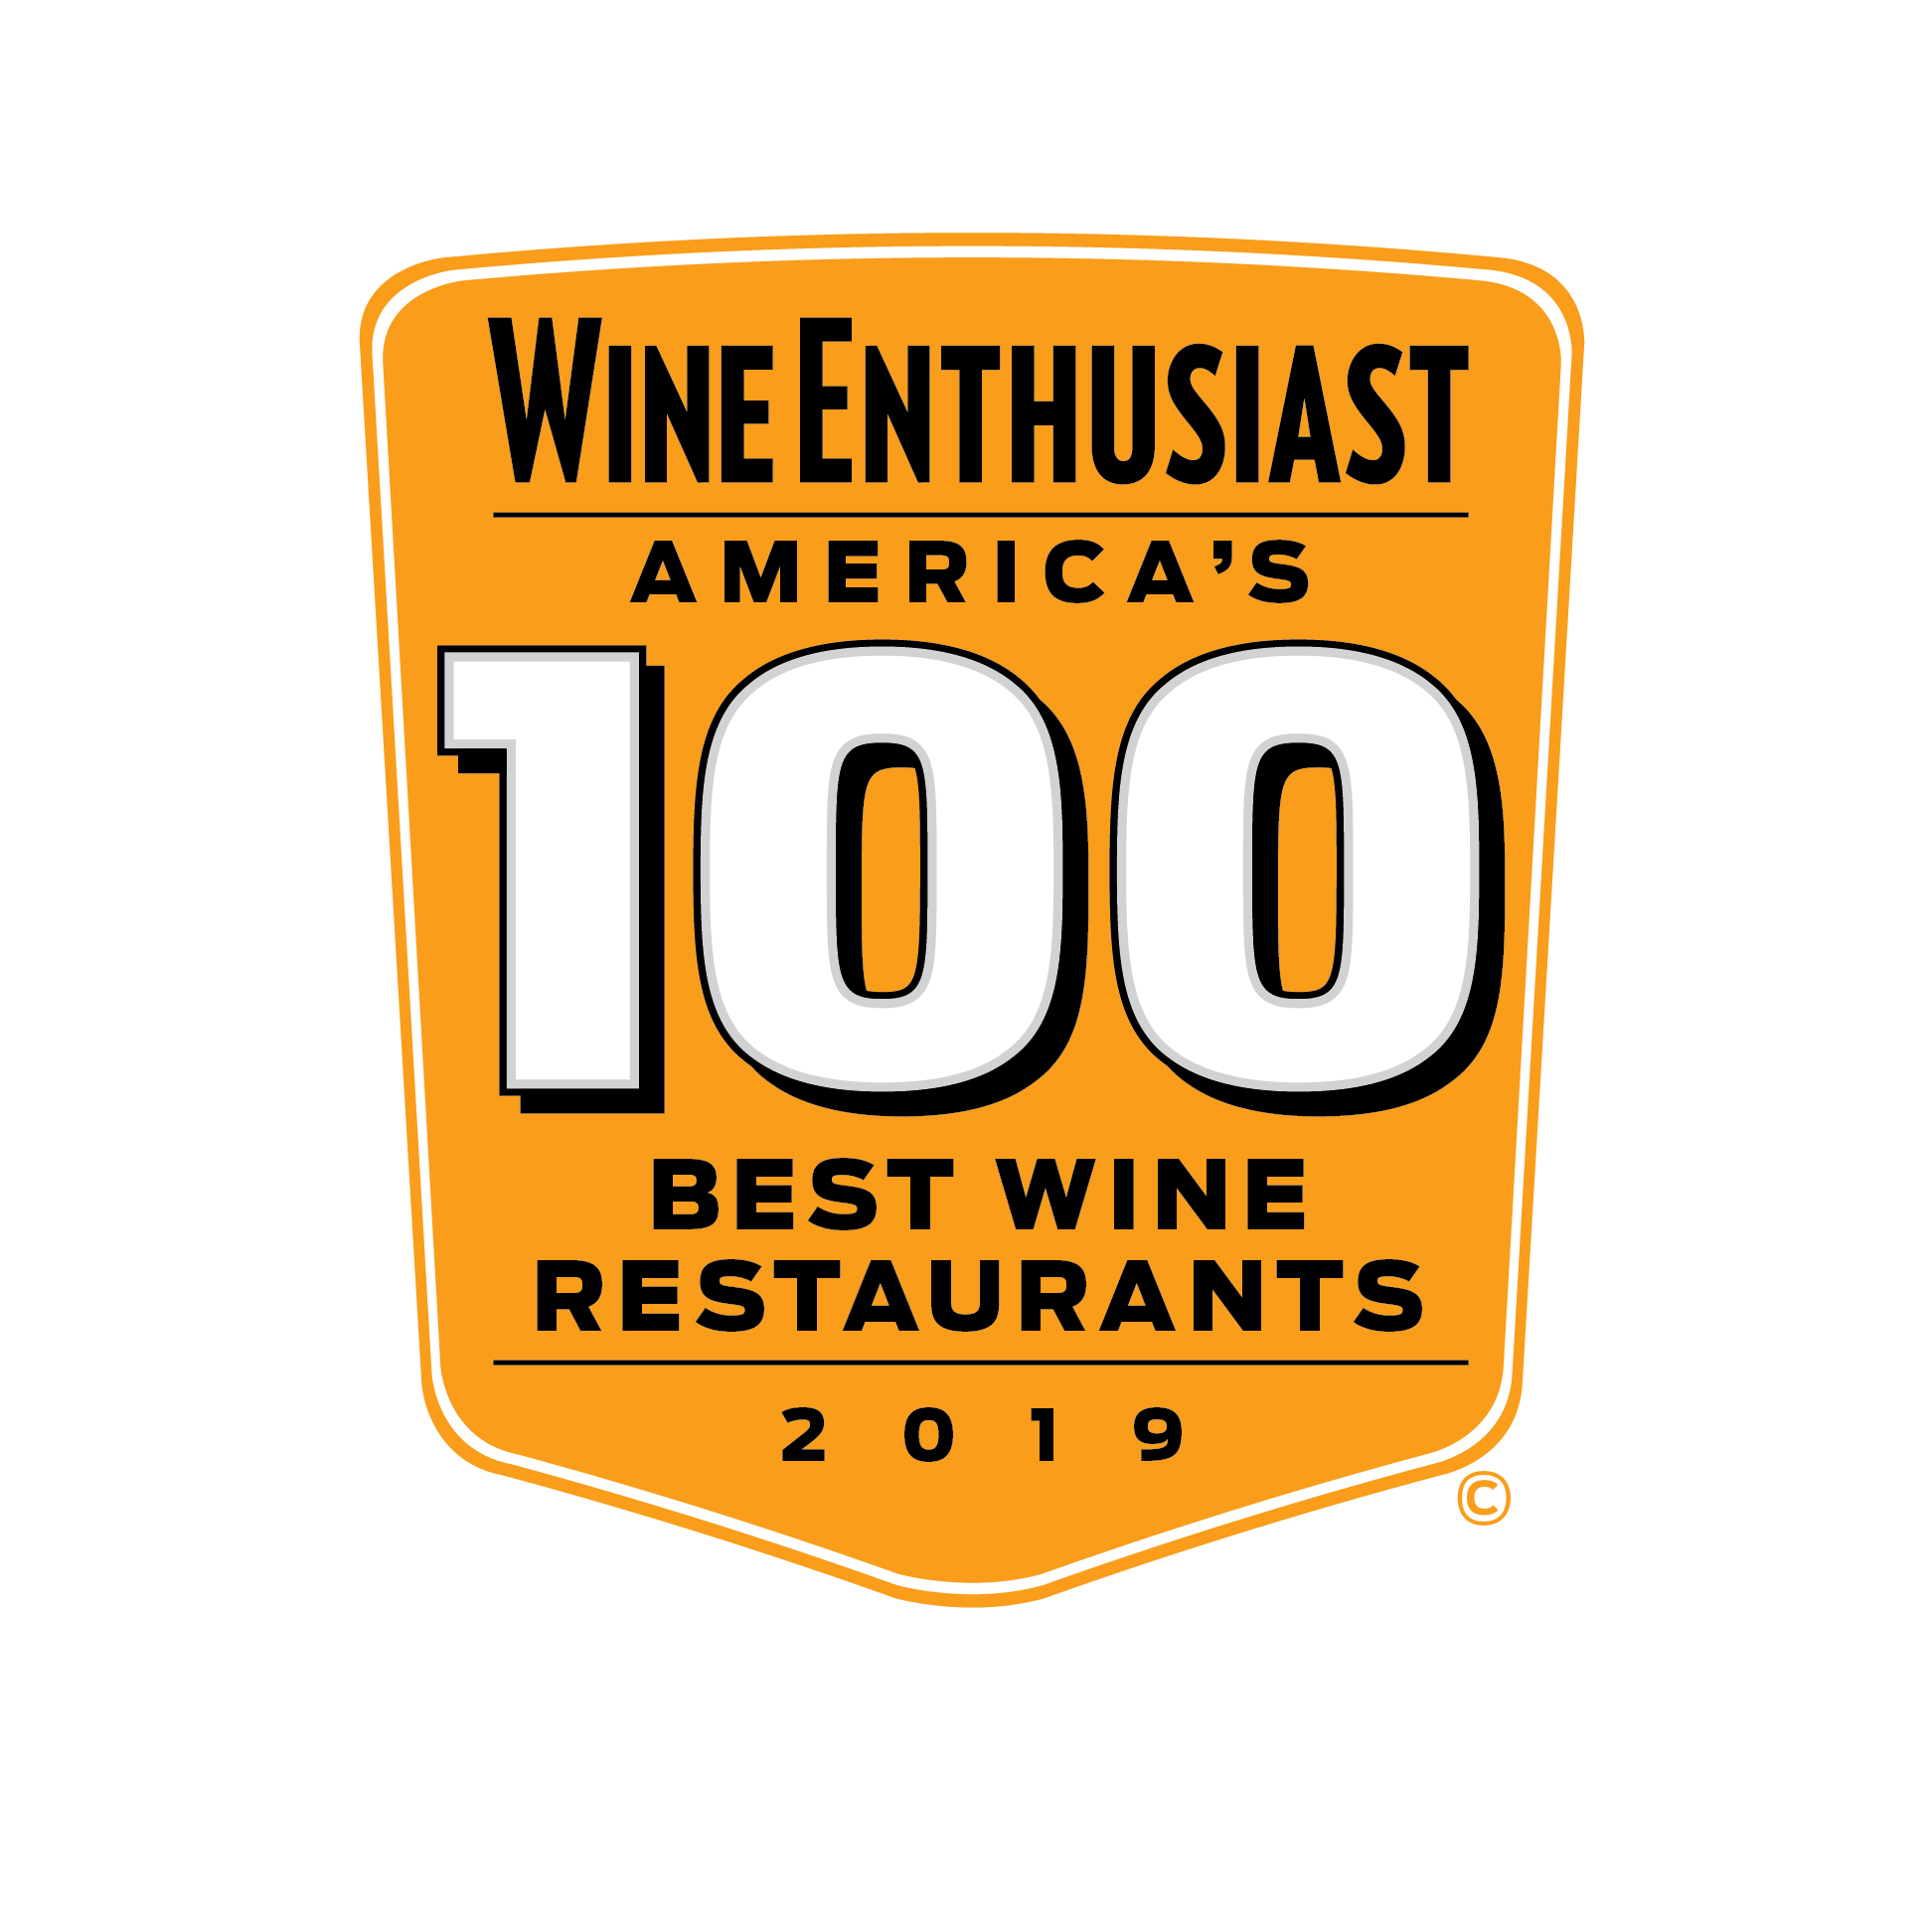 Wine Enthusiast Top 100 Wine Restaurant 2019